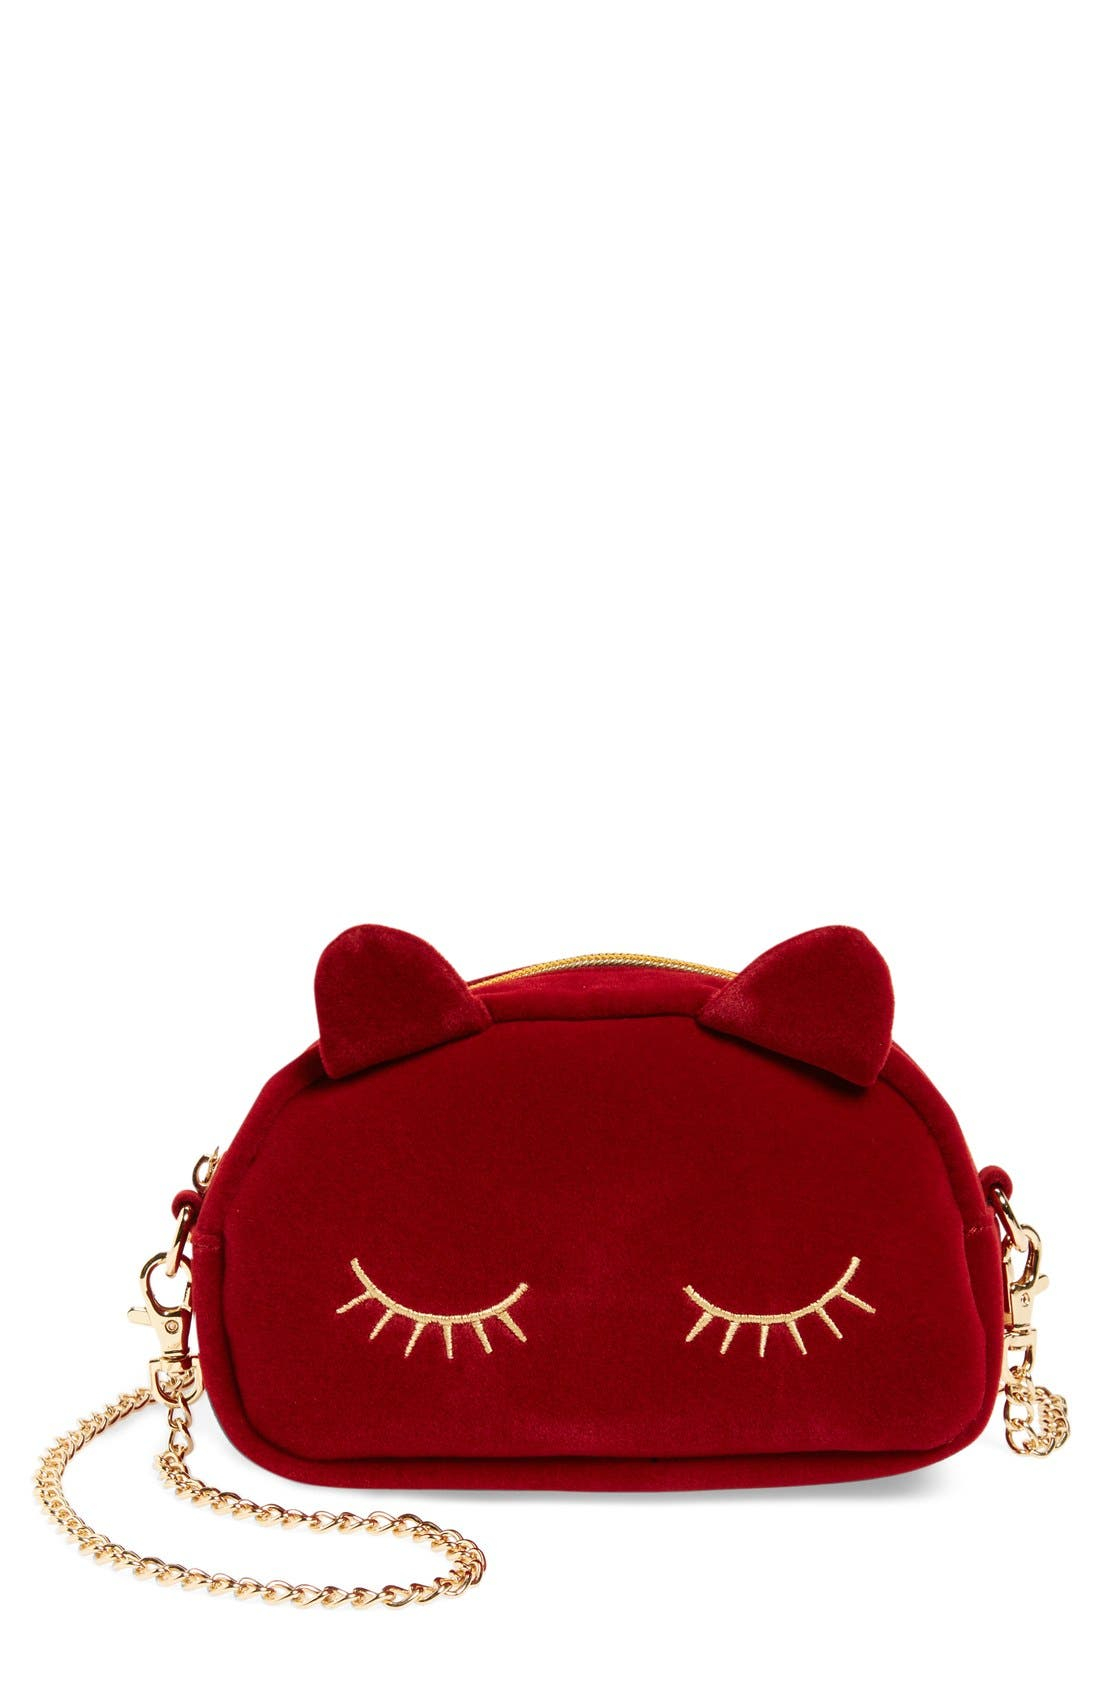 Alternate Image 1 Selected - Nila Anthony 'Mini Cat' Convertible Crossbody Bag